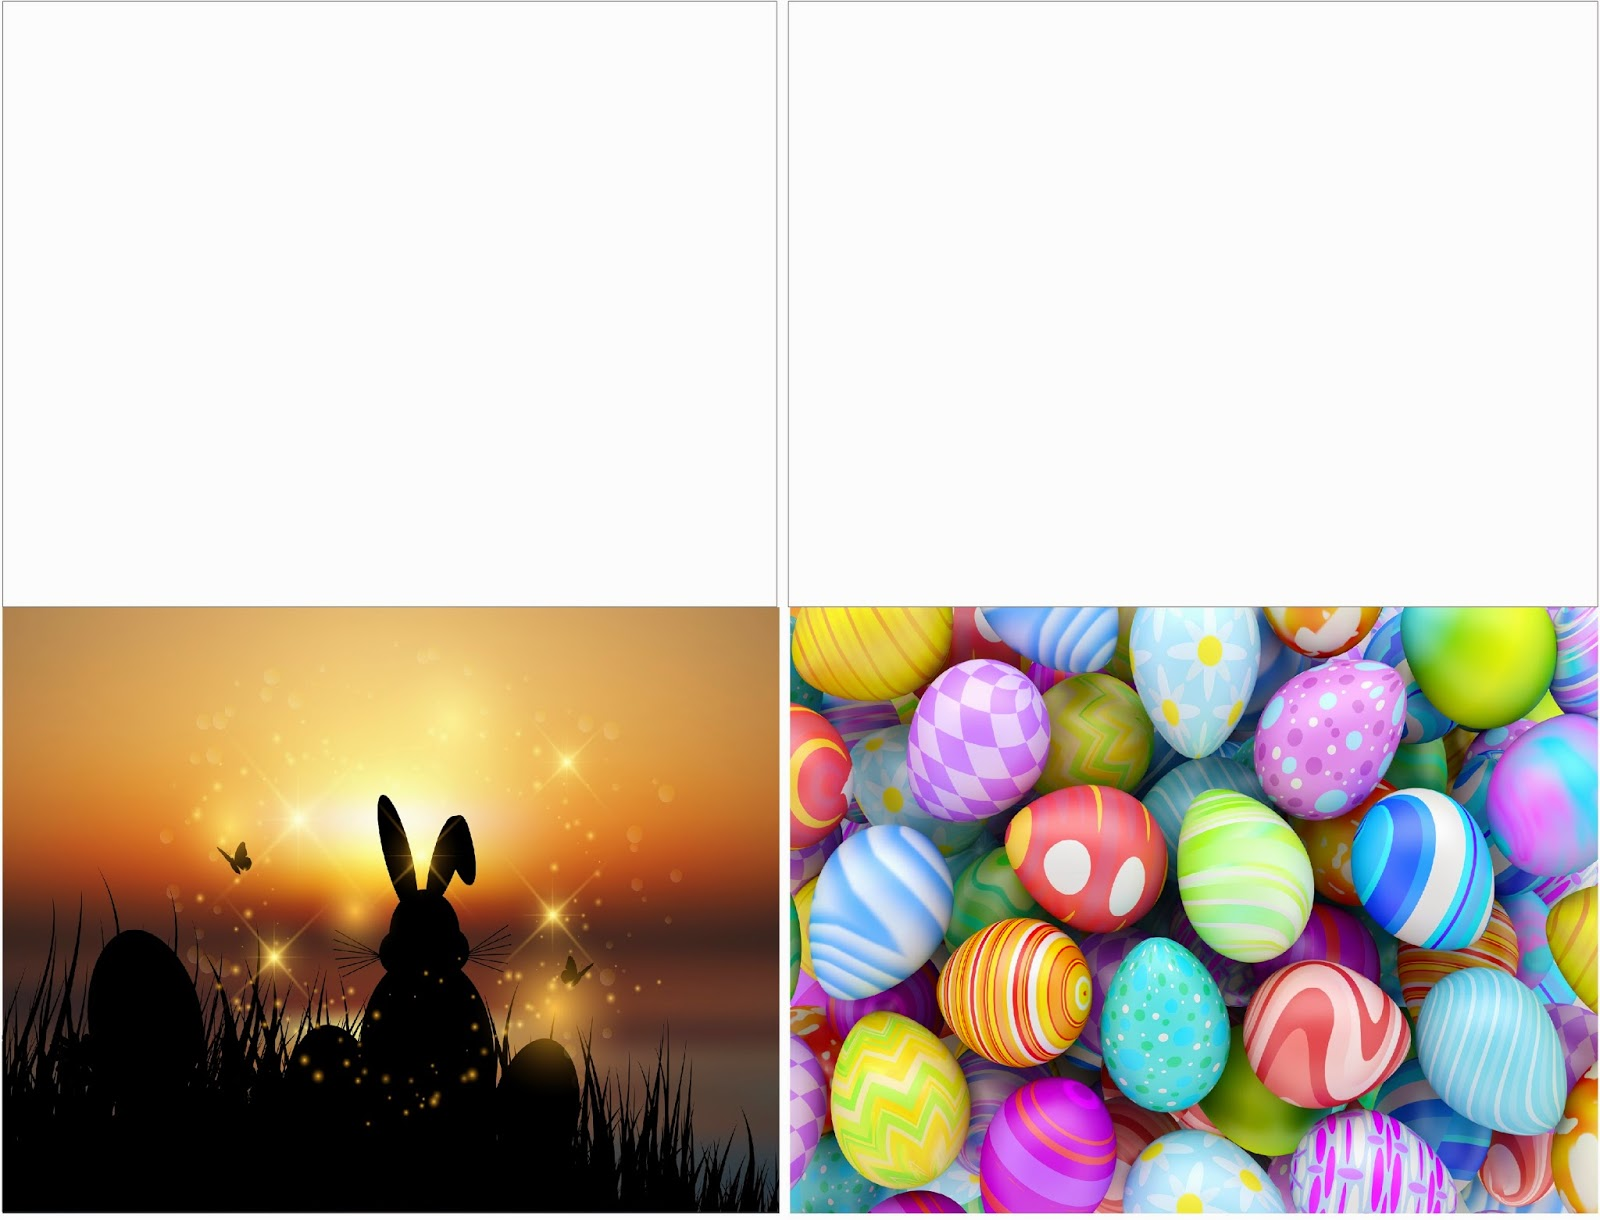 Let your loved ones know how much they mean to you this Easter with these beautiful and simple printable Easter Cards.  Cards are available in both religious and fun designs that will brighten anyones day with their beautiful fronts and lovely notes from you.